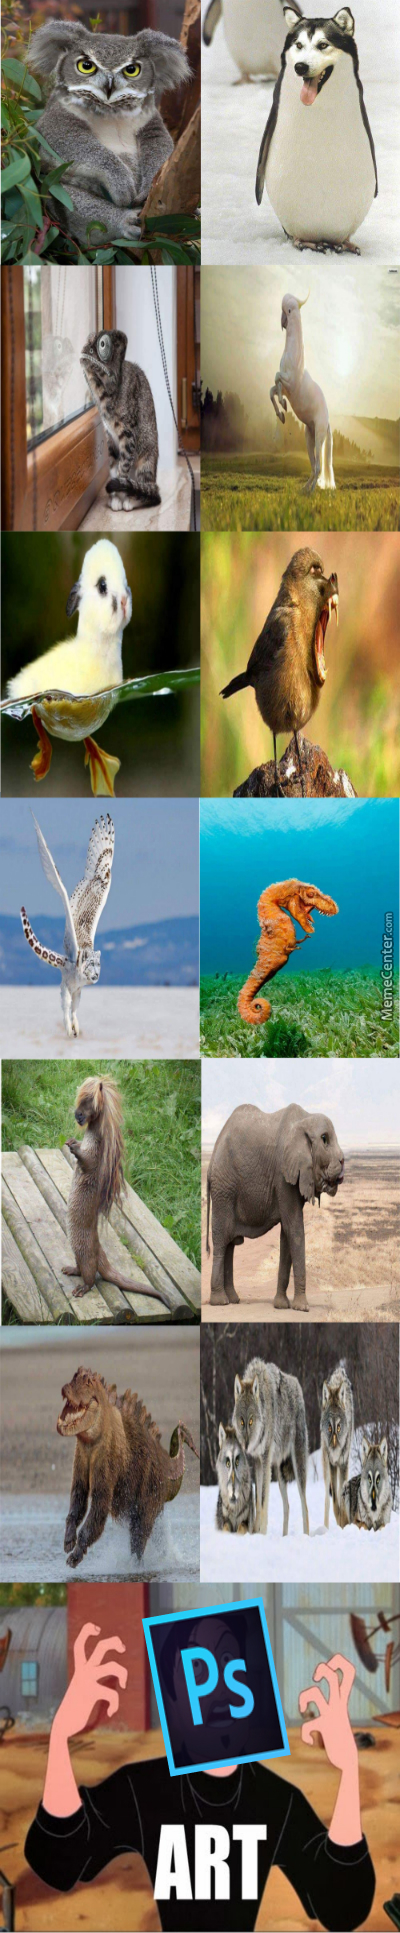 Here Are Some Funny Photoshopped Animals